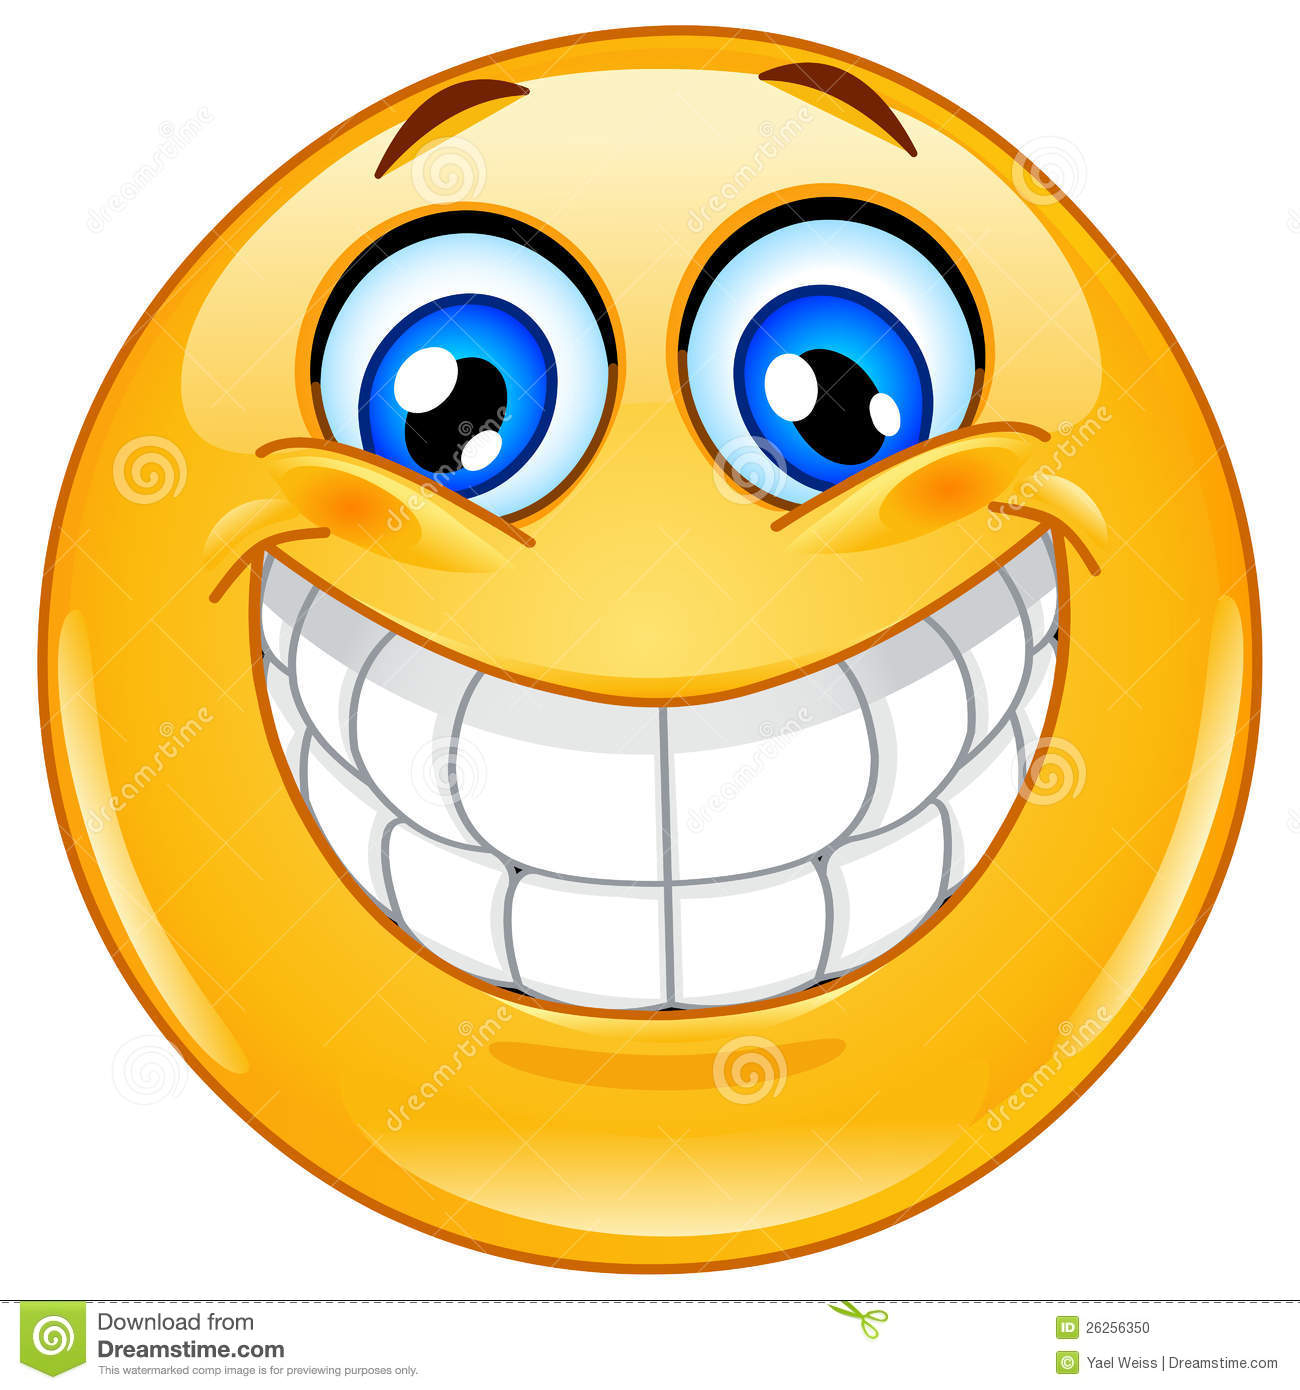 Big Smile Emoticon Stock Photo - Image: 26256350